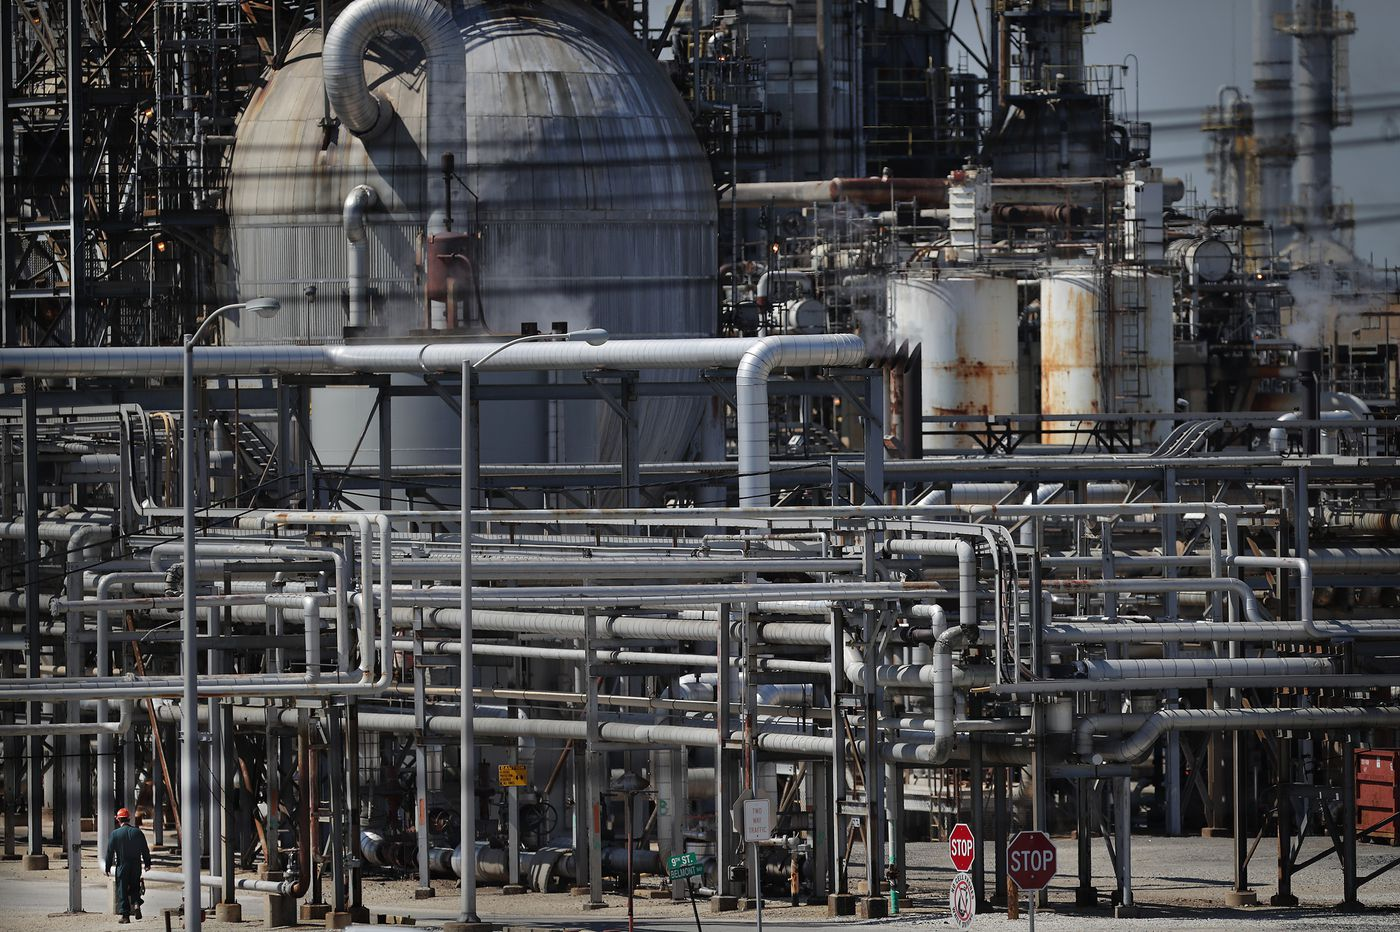 Philadelphia Energy Solutions to close refinery damaged by fire; gas prices spike